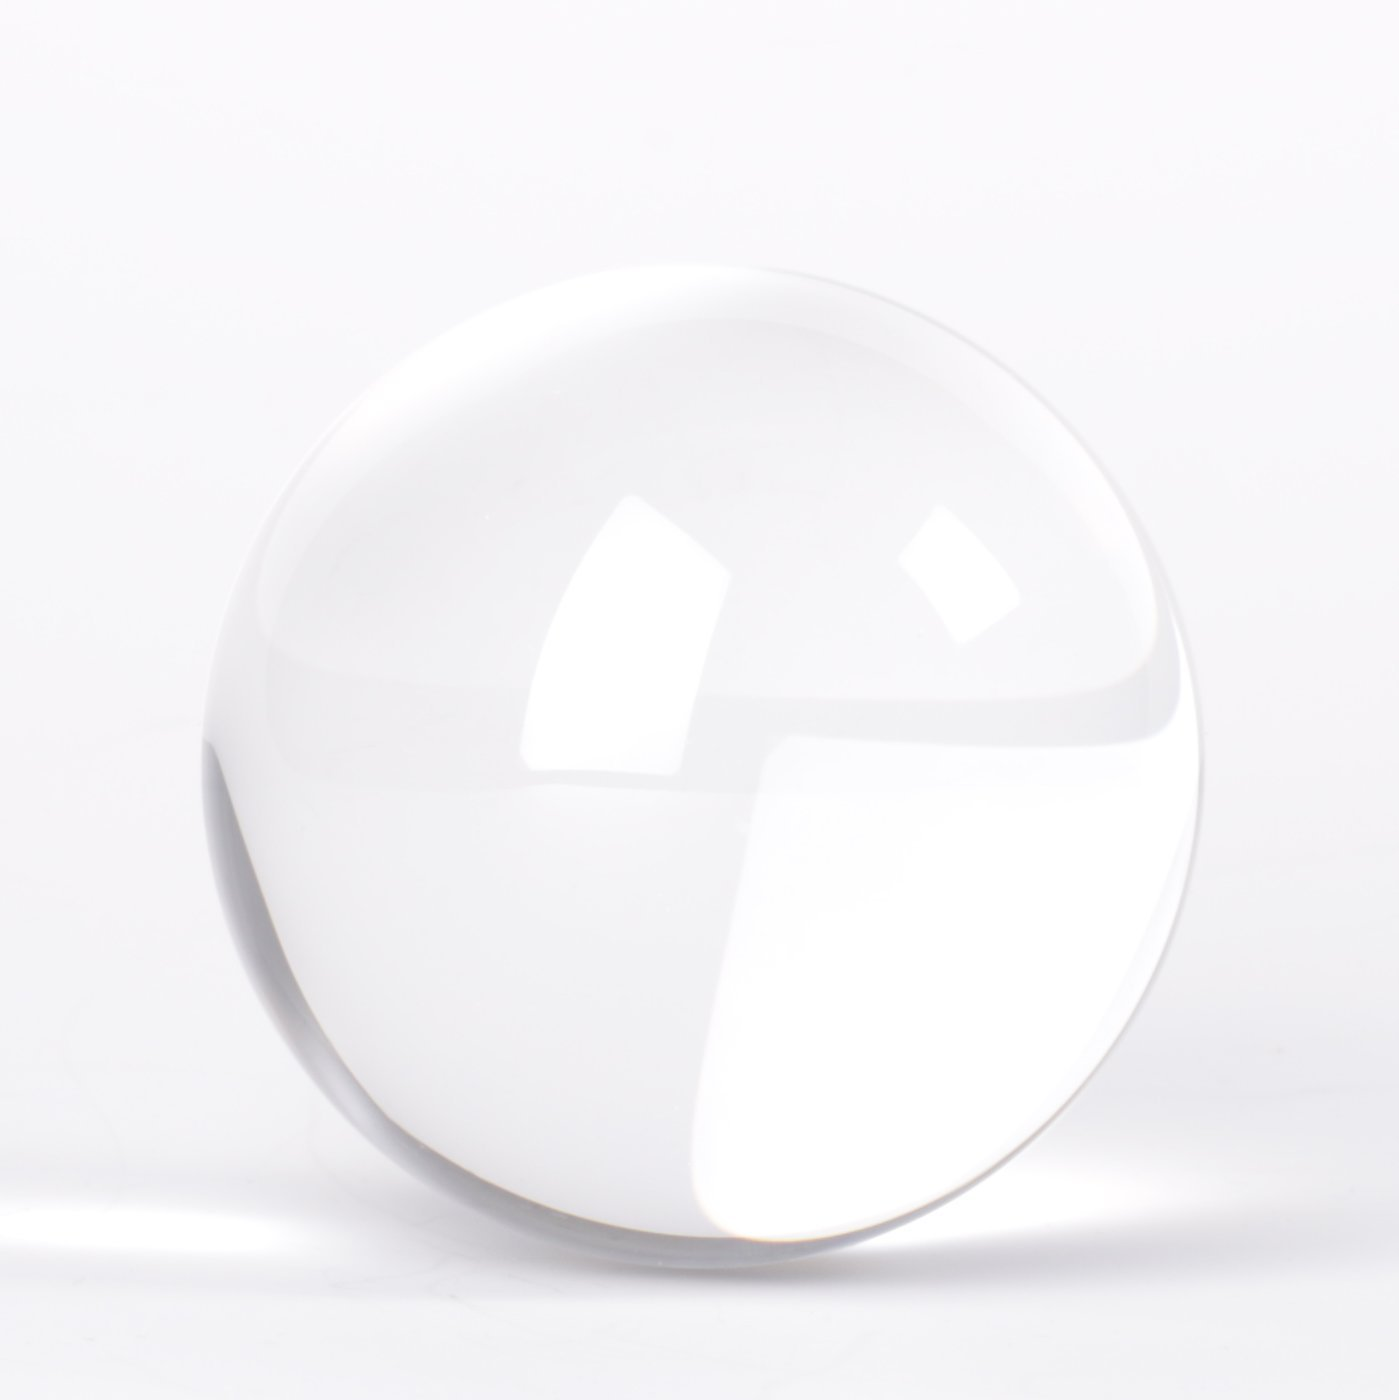 Original Lensball Pro 80mm, K9 Crystal Ball with Microfiber Pouch, Photography Accessory by Lensball